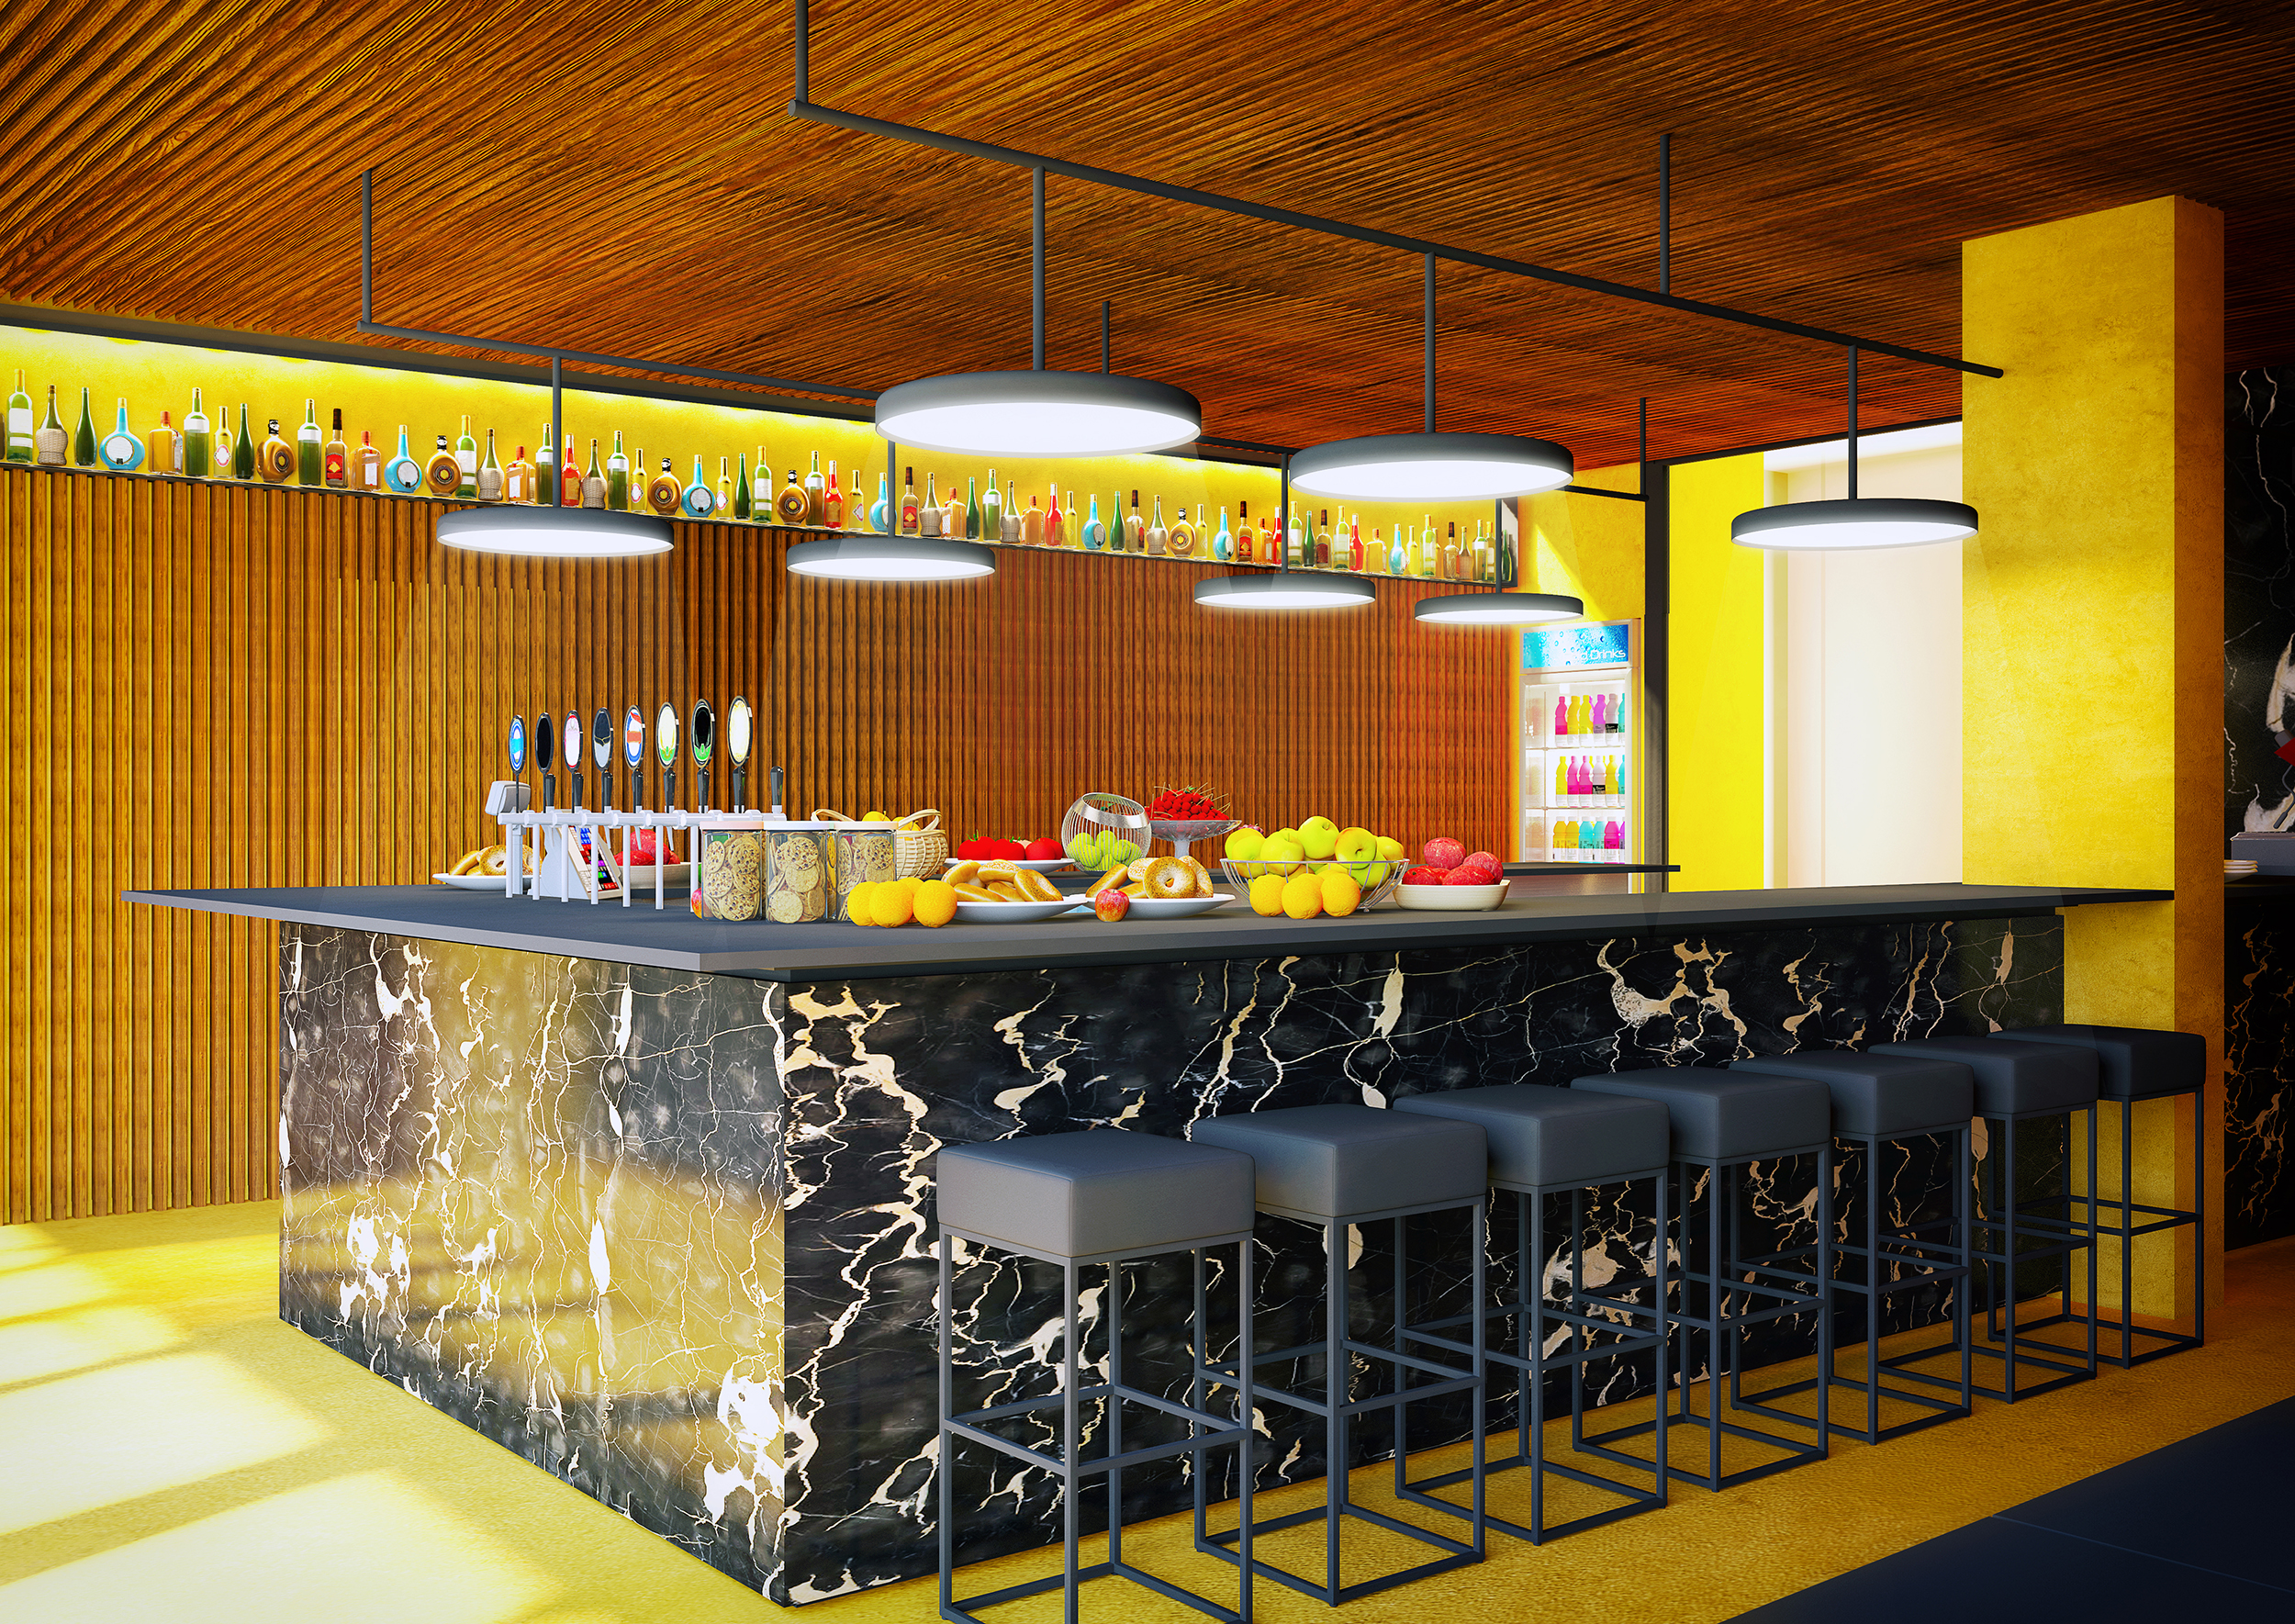 morena-architects-ah superbar-01